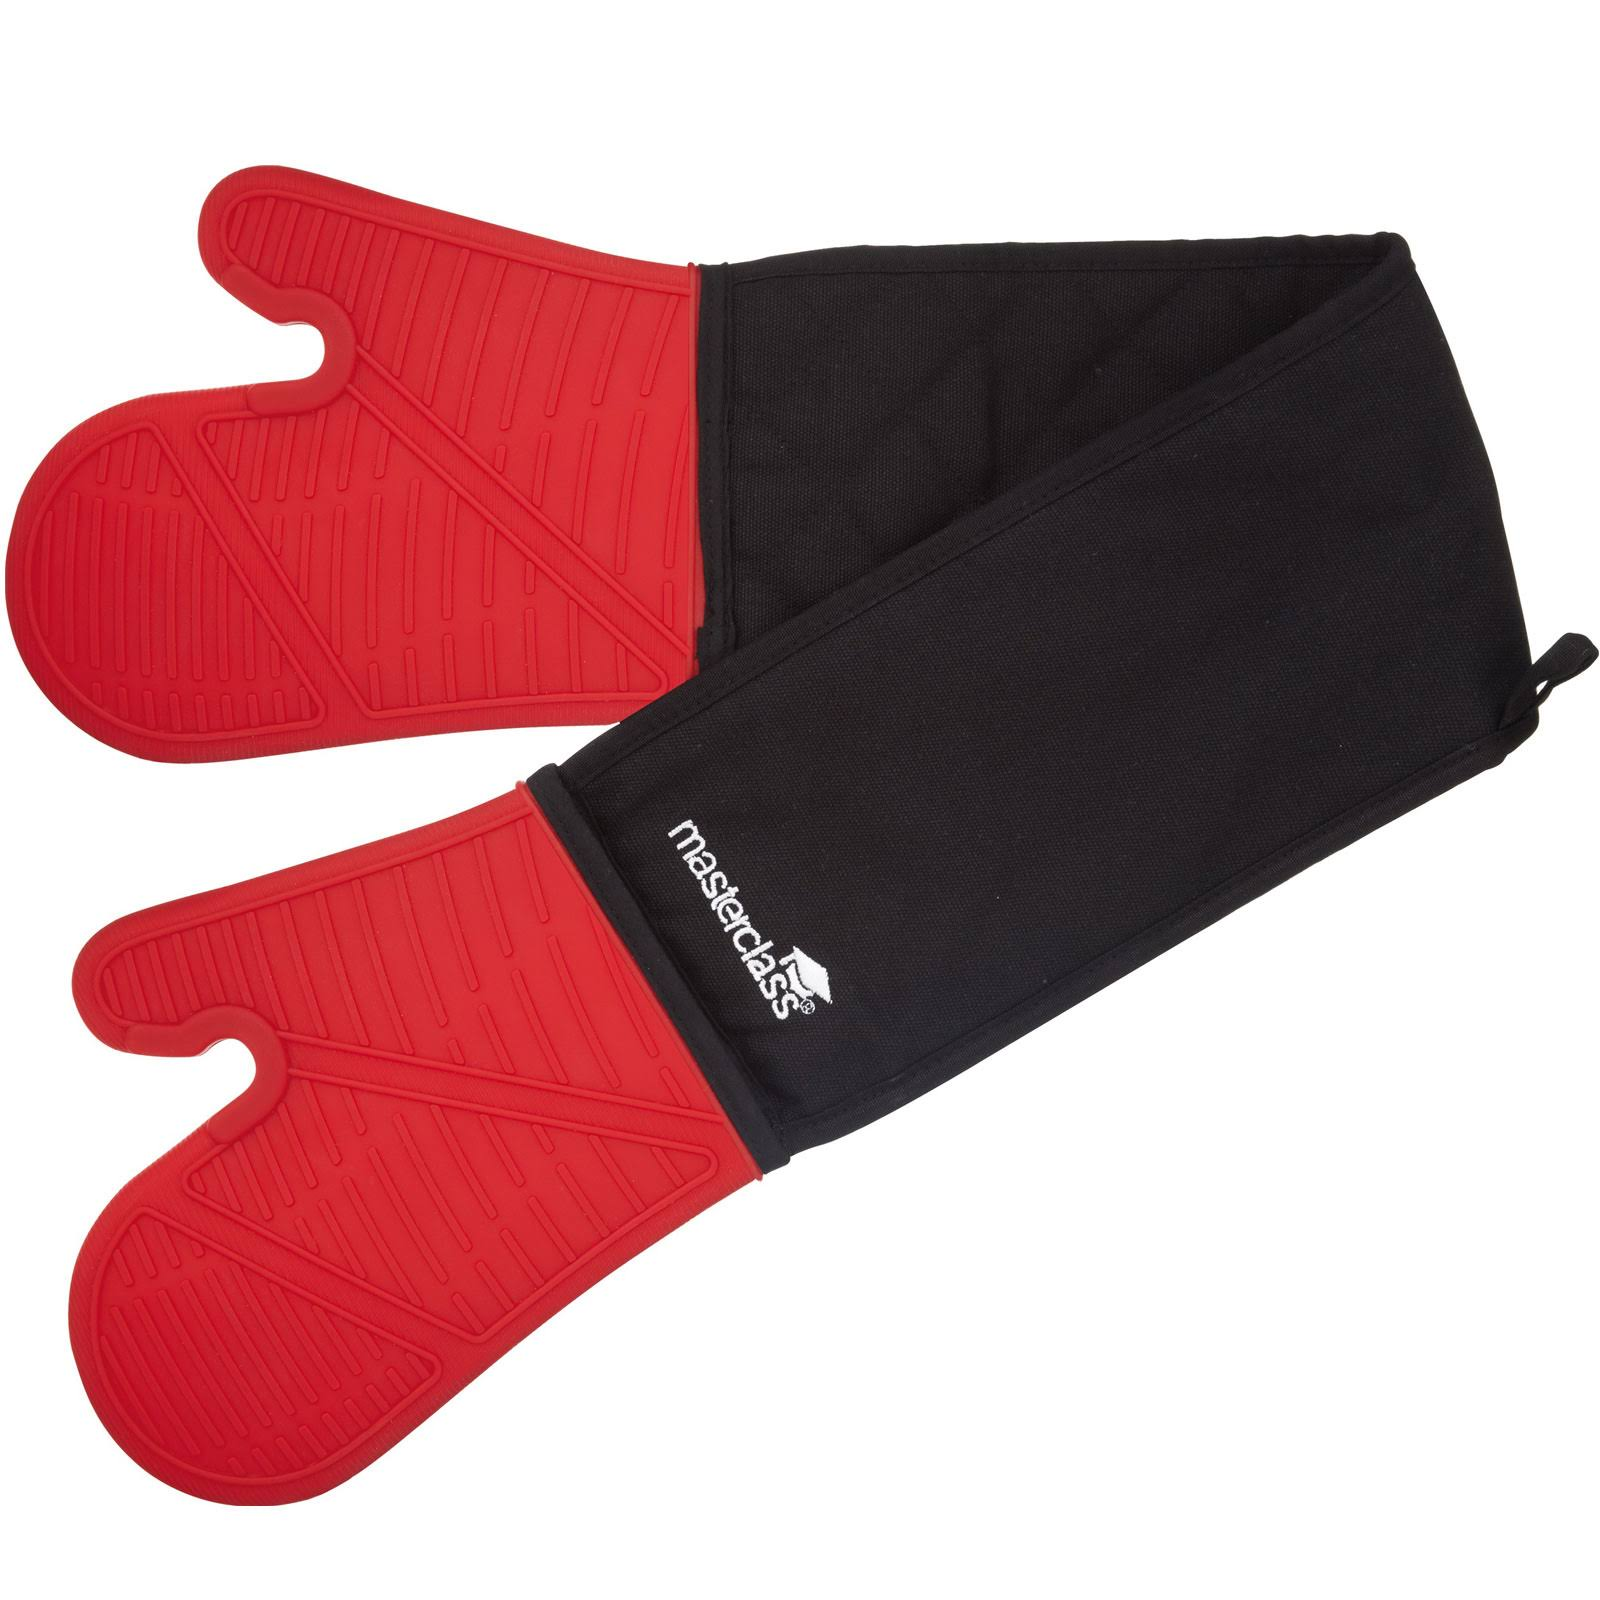 Master Class Seamless Silicone Double Oven Glove - Red